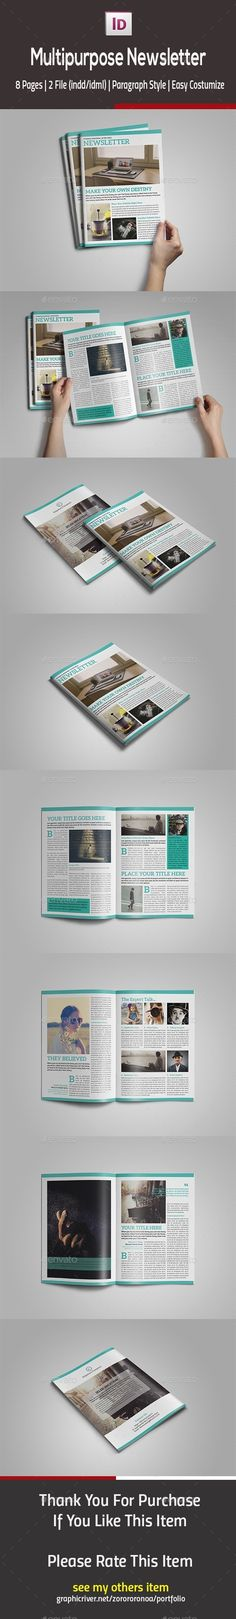 Multipurpose InDesign Newsletter Template InDesign INDD #design Download: http://graphicriver.net/item/multipurpose-indesign-newsletter/13305894?ref=ksioks